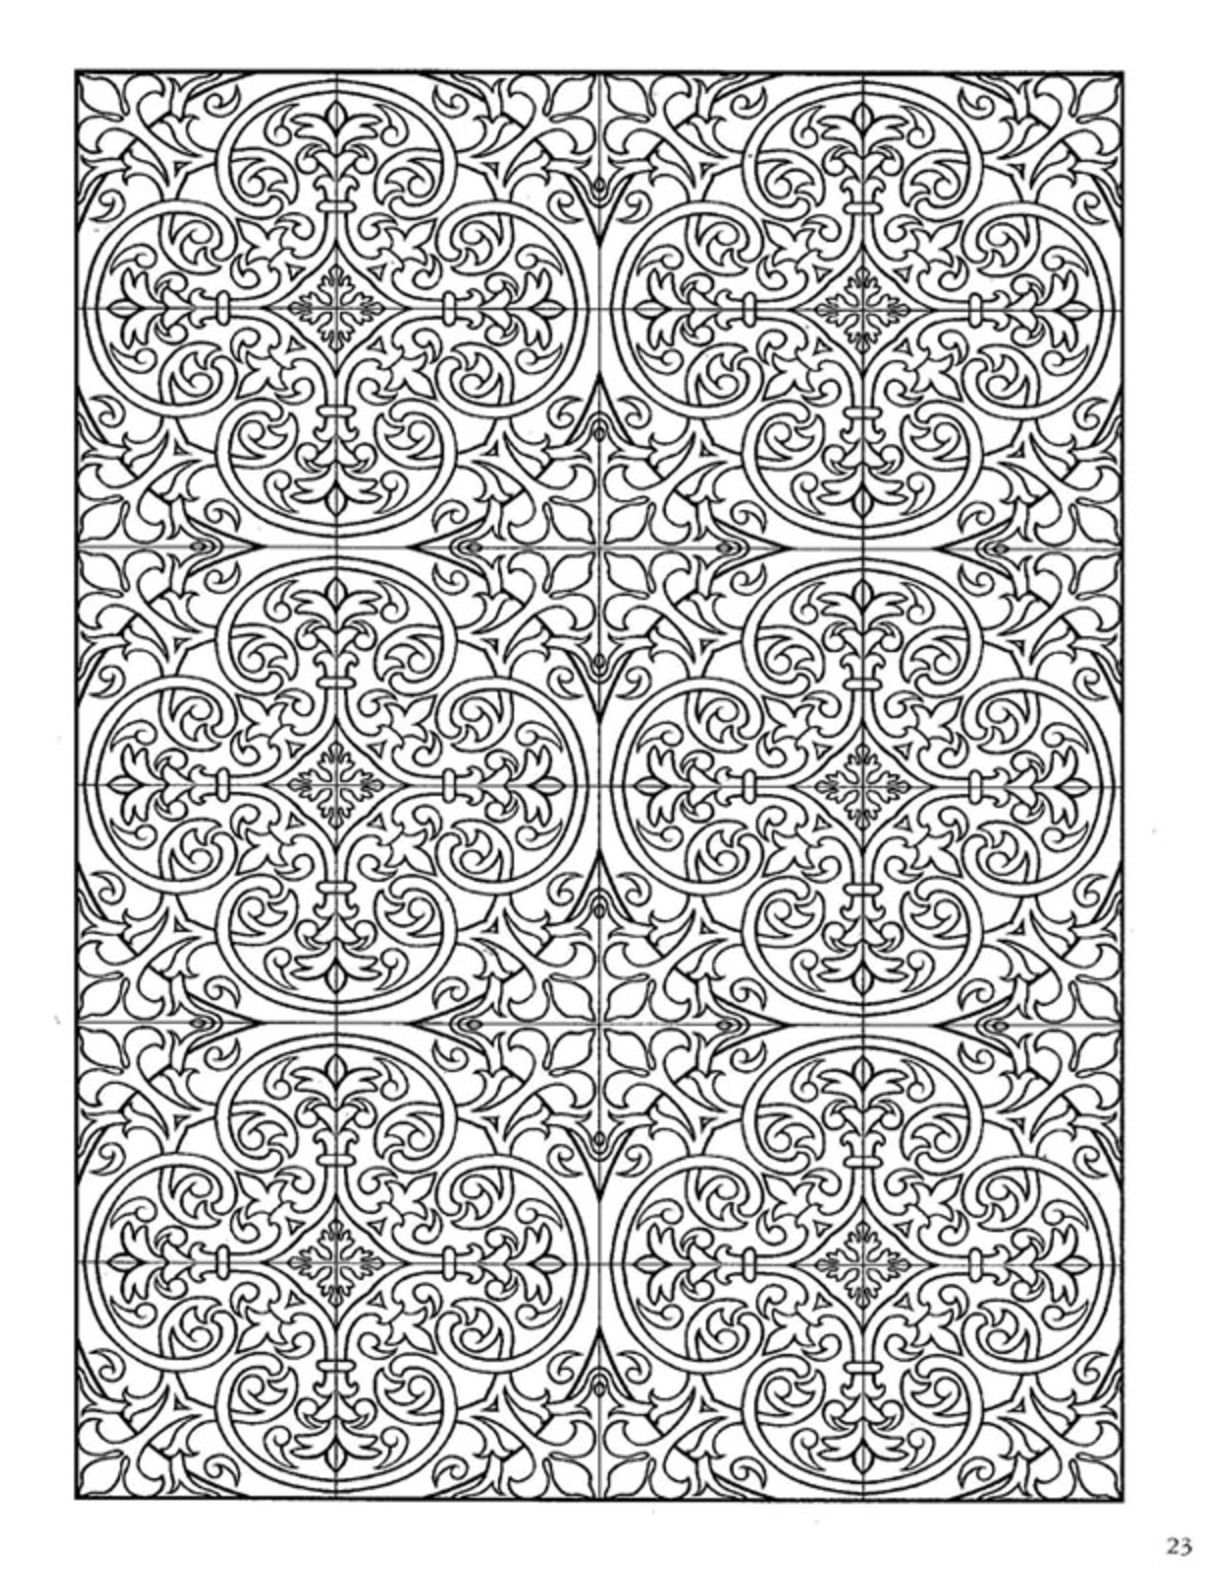 Flower drawings on pinterest dover publications coloring pages and - Dover Decorative Tile Coloring Book